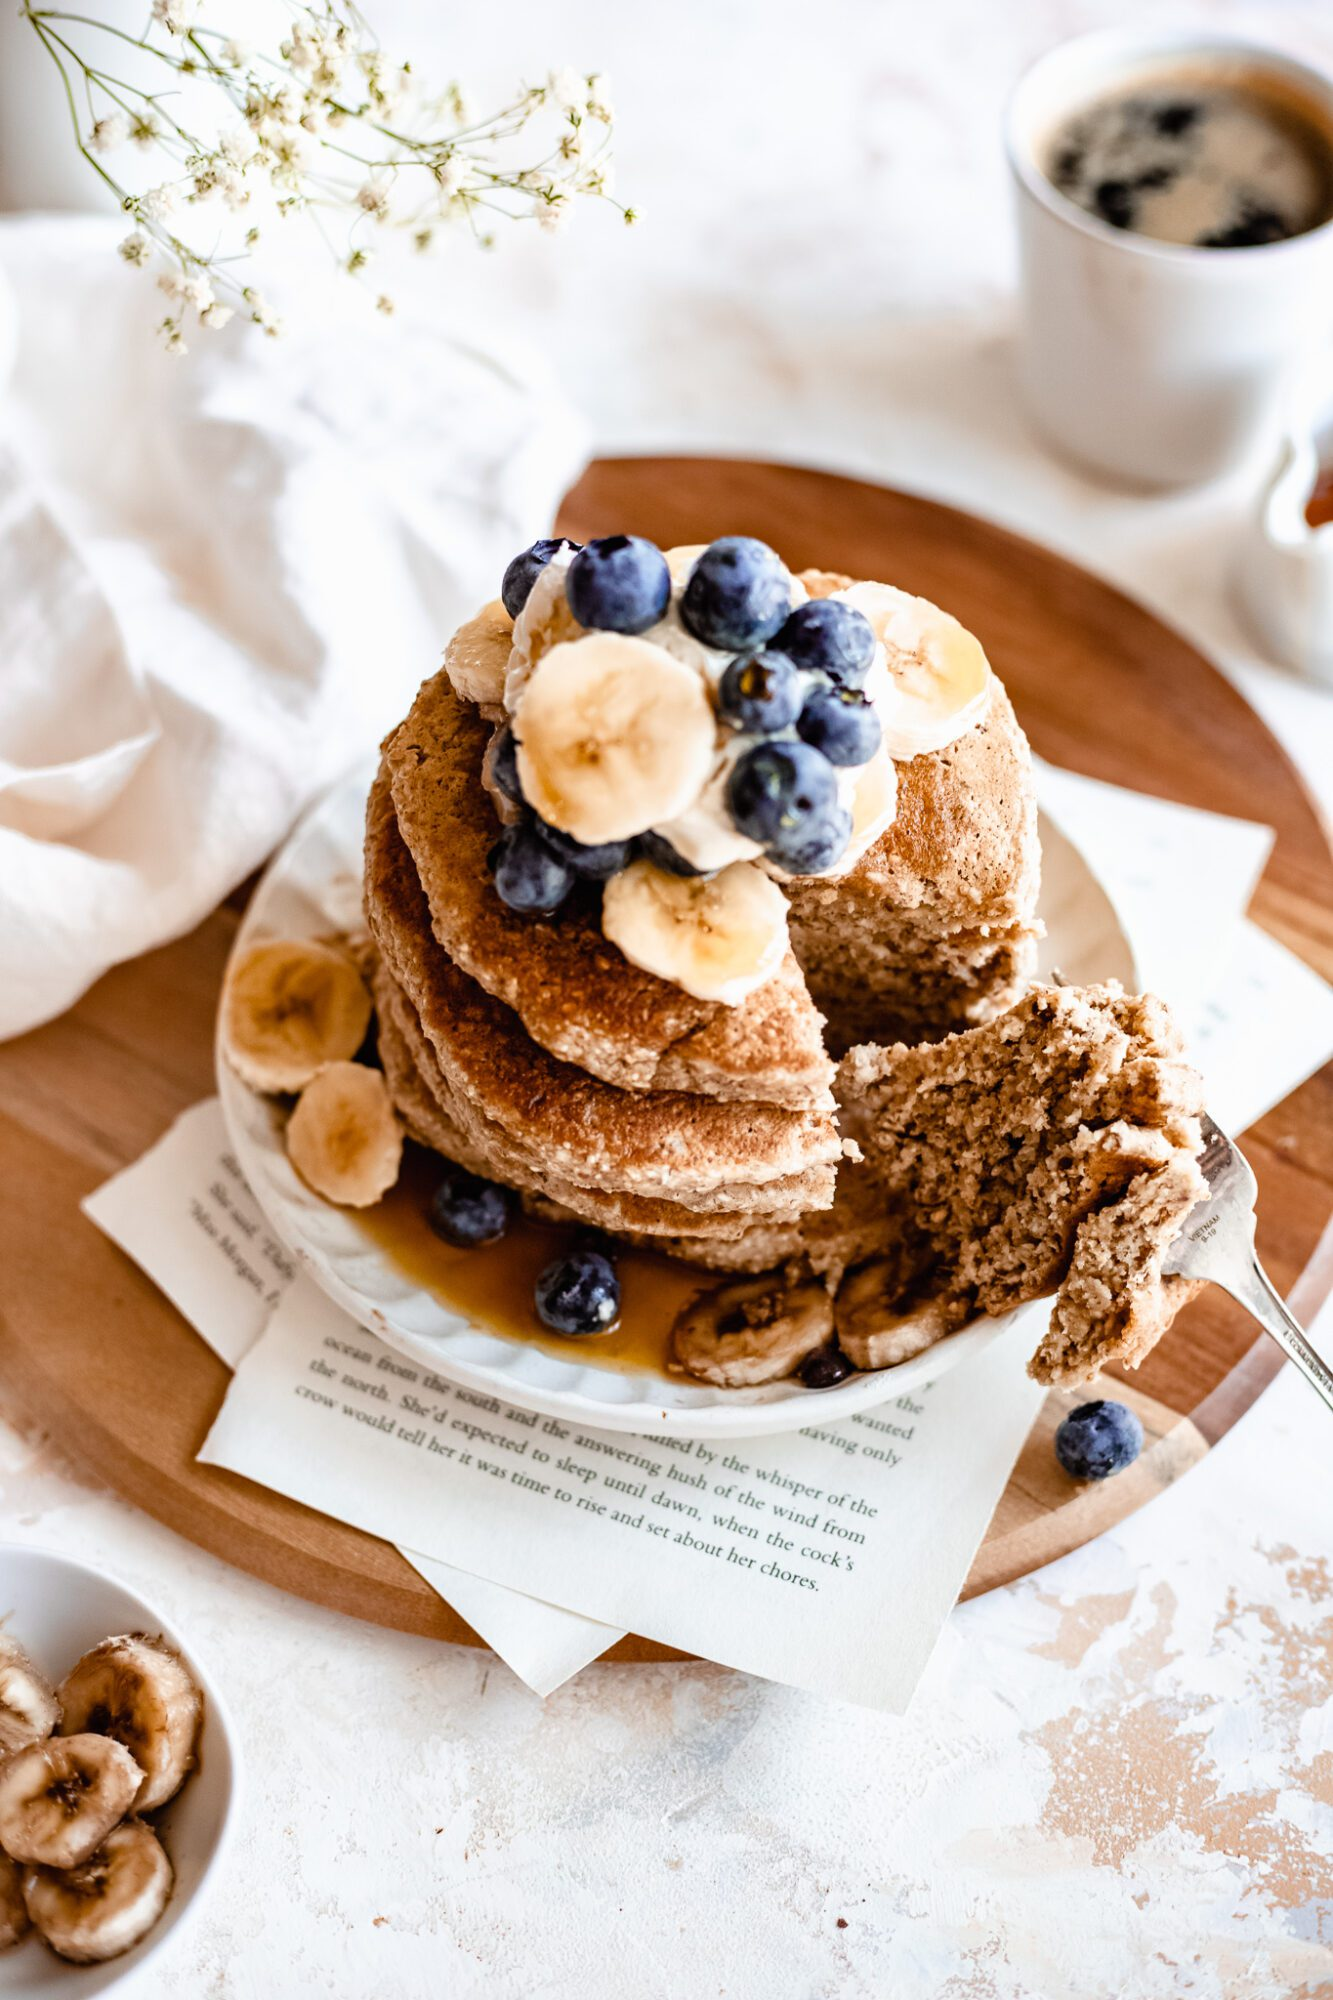 oatmeal pancakes on wooden board with slice missing